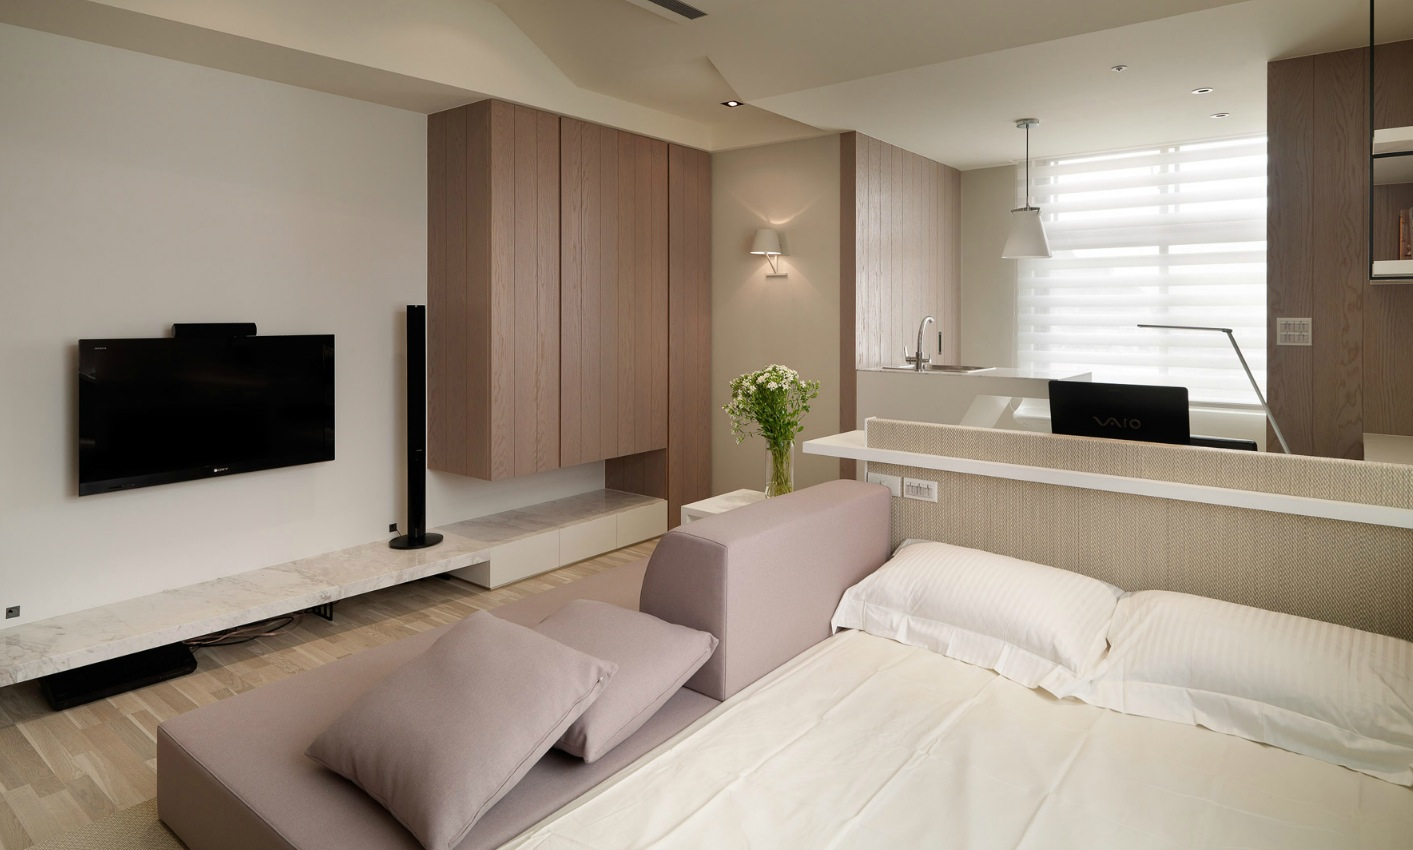 SpaceEfficient Studio Apartment Furniture Ideas for Your Small Living Place  Ideas 4 Homes